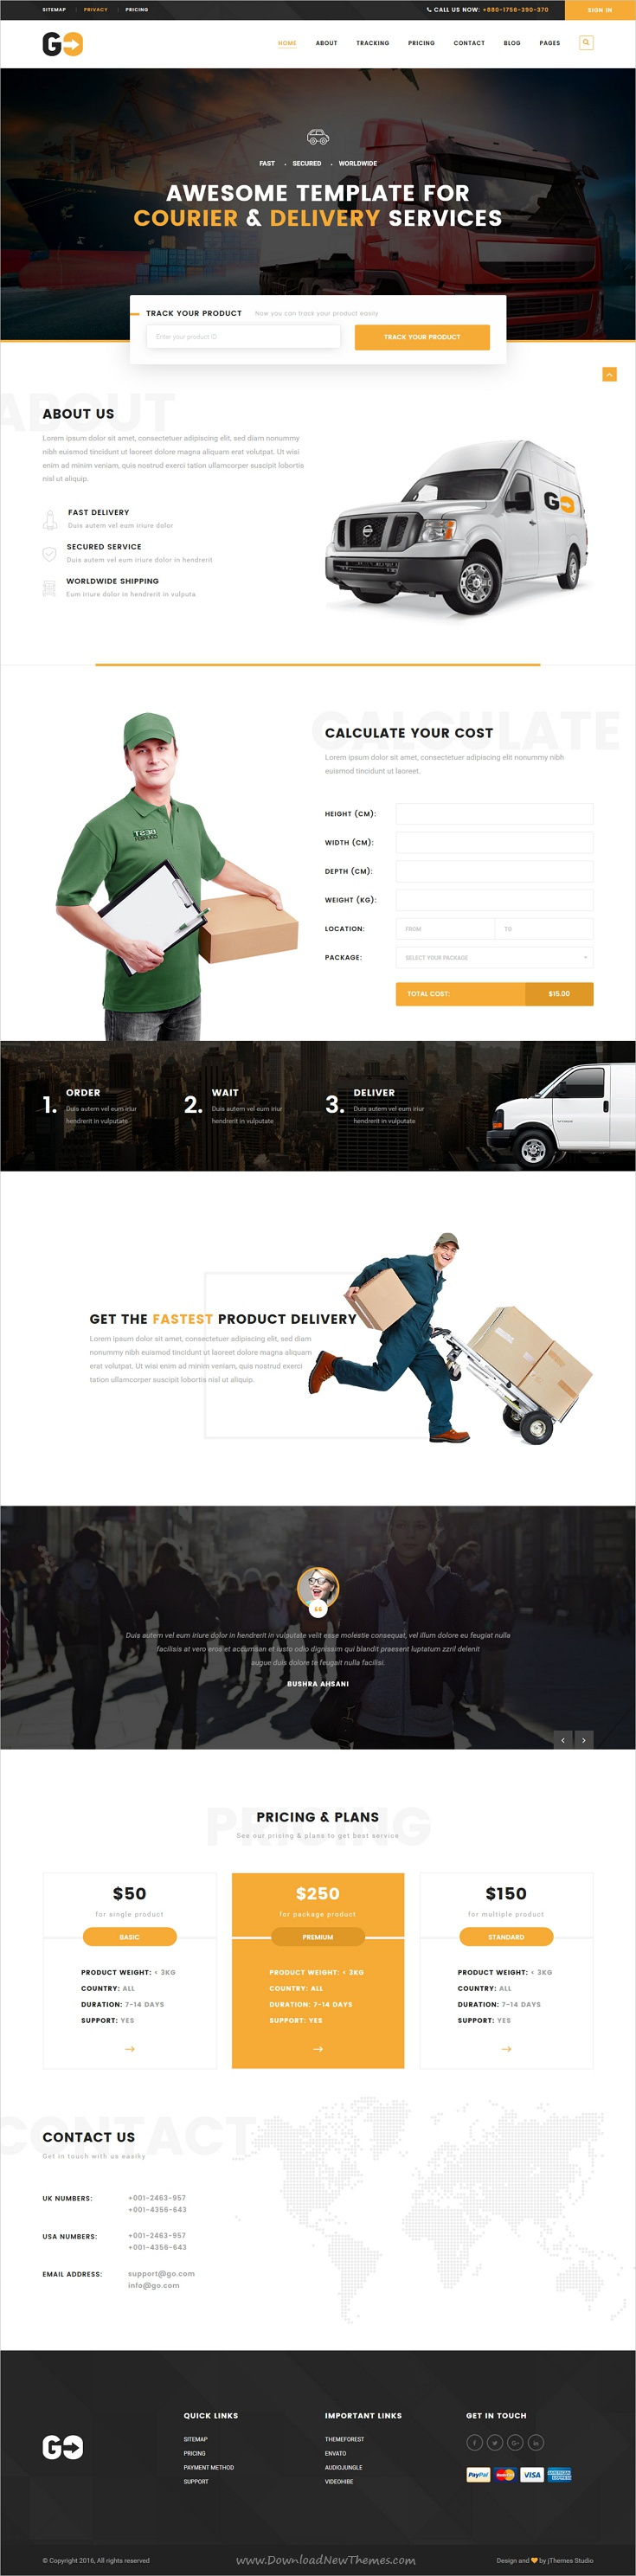 GO – A Courier & Delivery Service HTML Template | Template